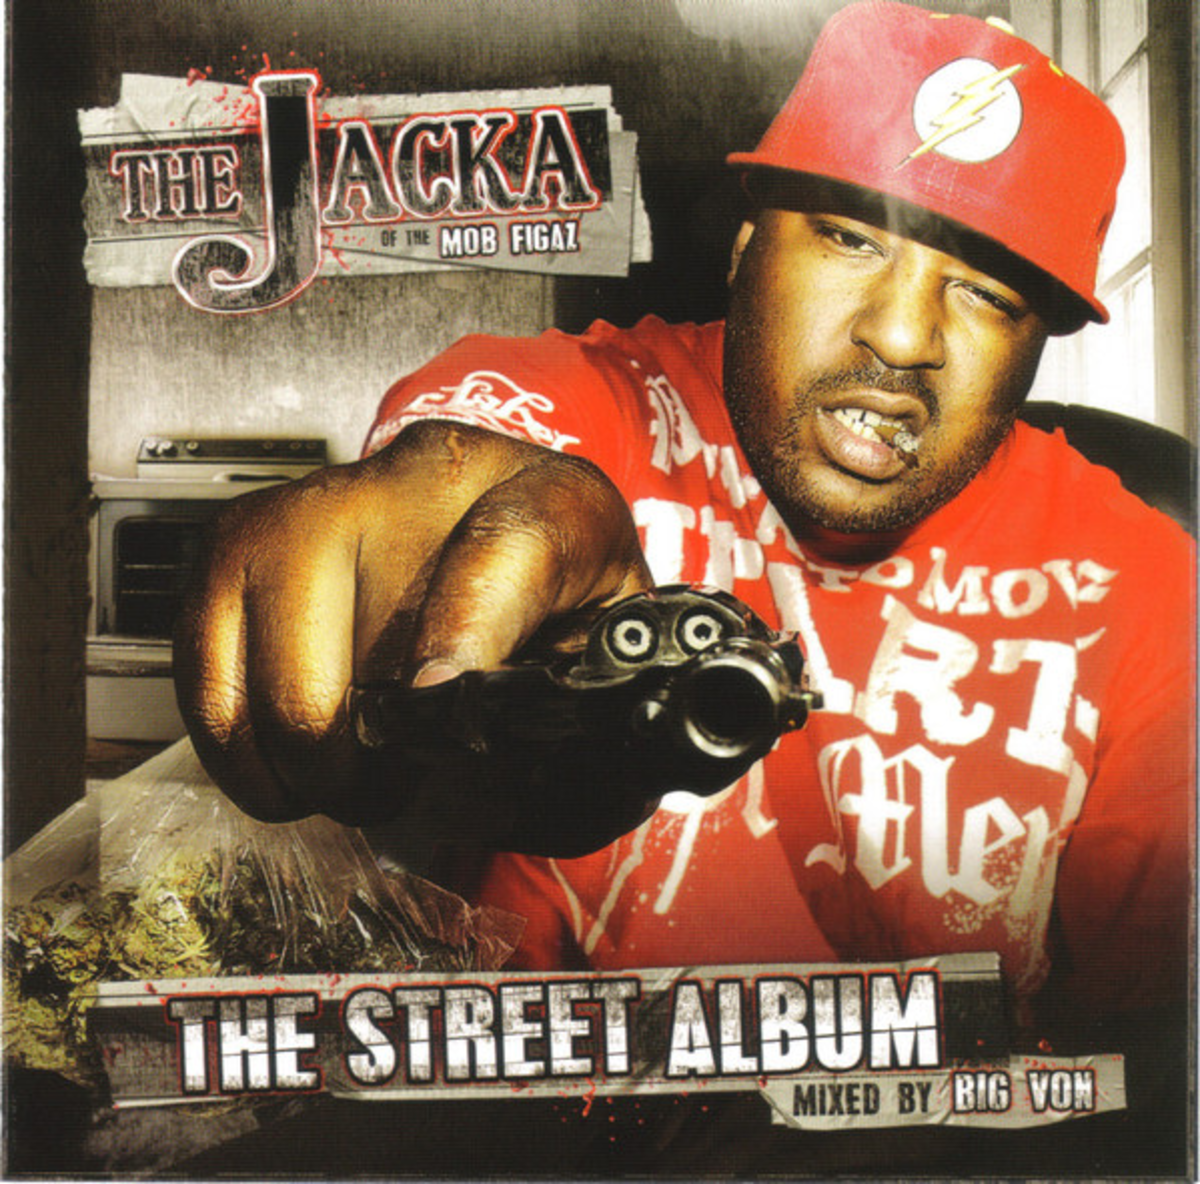 The Jacka's 2008 mixtape, The Street Album.